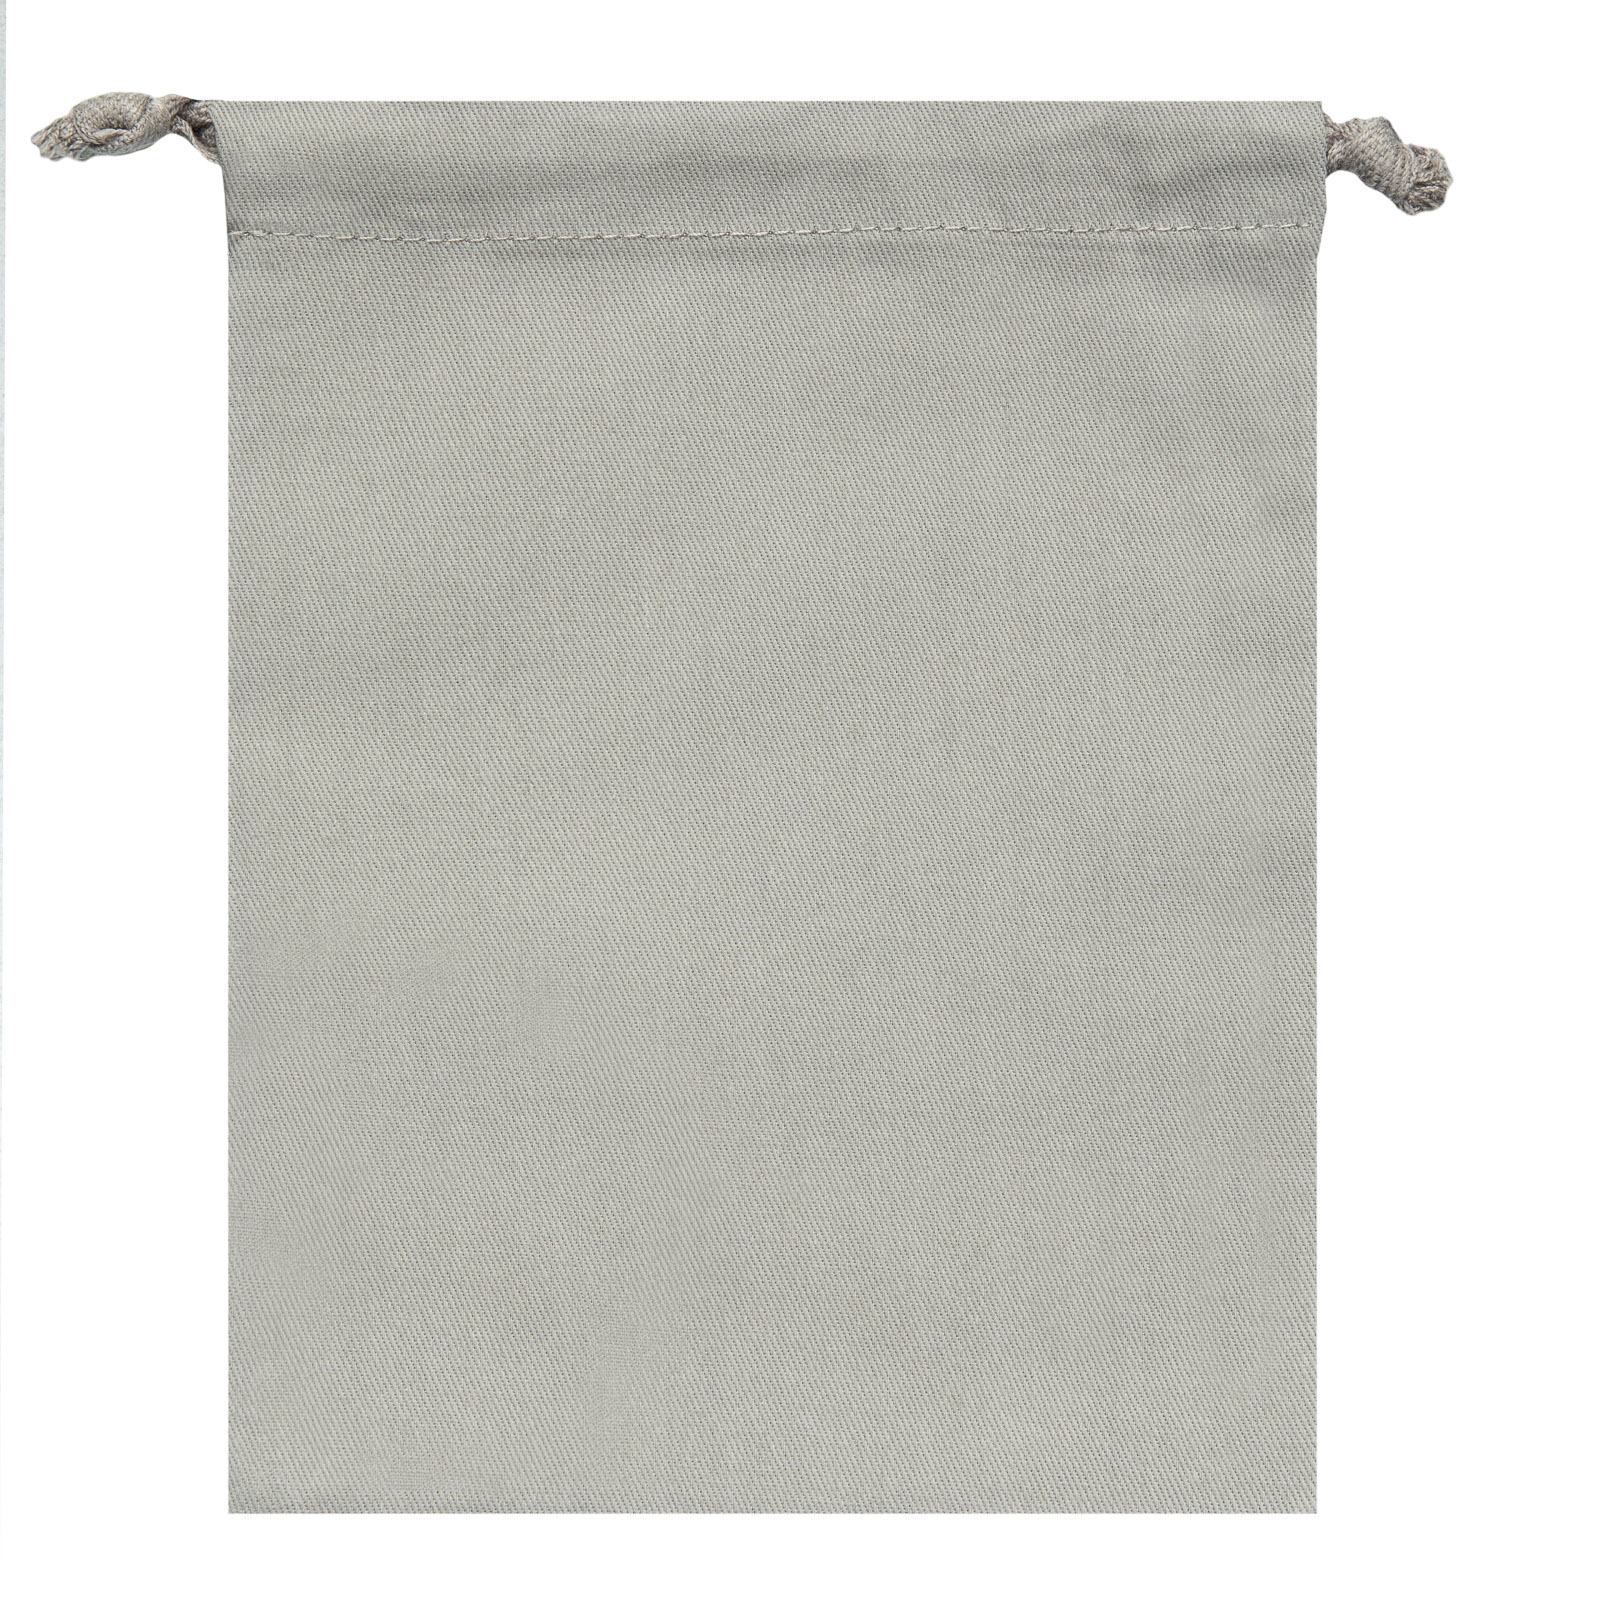 """Signature Napkins Face Covering Storage Pouch – 8"""" x 6"""" Drawstring Bag - 100% Cotton – 10 x Pack - Grey"""